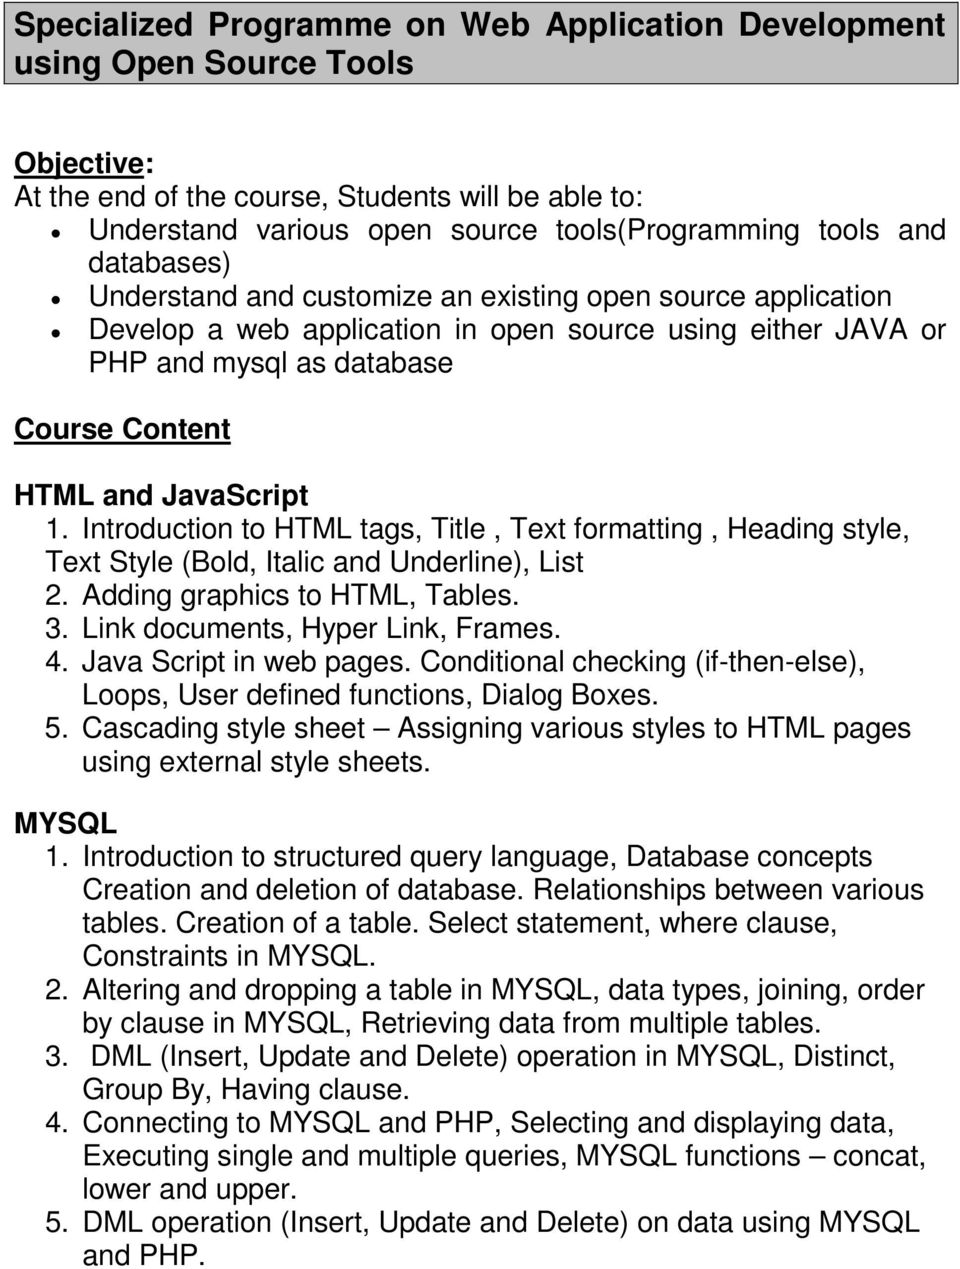 Introduction to HTML tags, Title, Text formatting, Heading style, Text Style (Bold, Italic and Underline), List 2. Adding graphics to HTML, Tables. 3. Link documents, Hyper Link, Frames. 4.